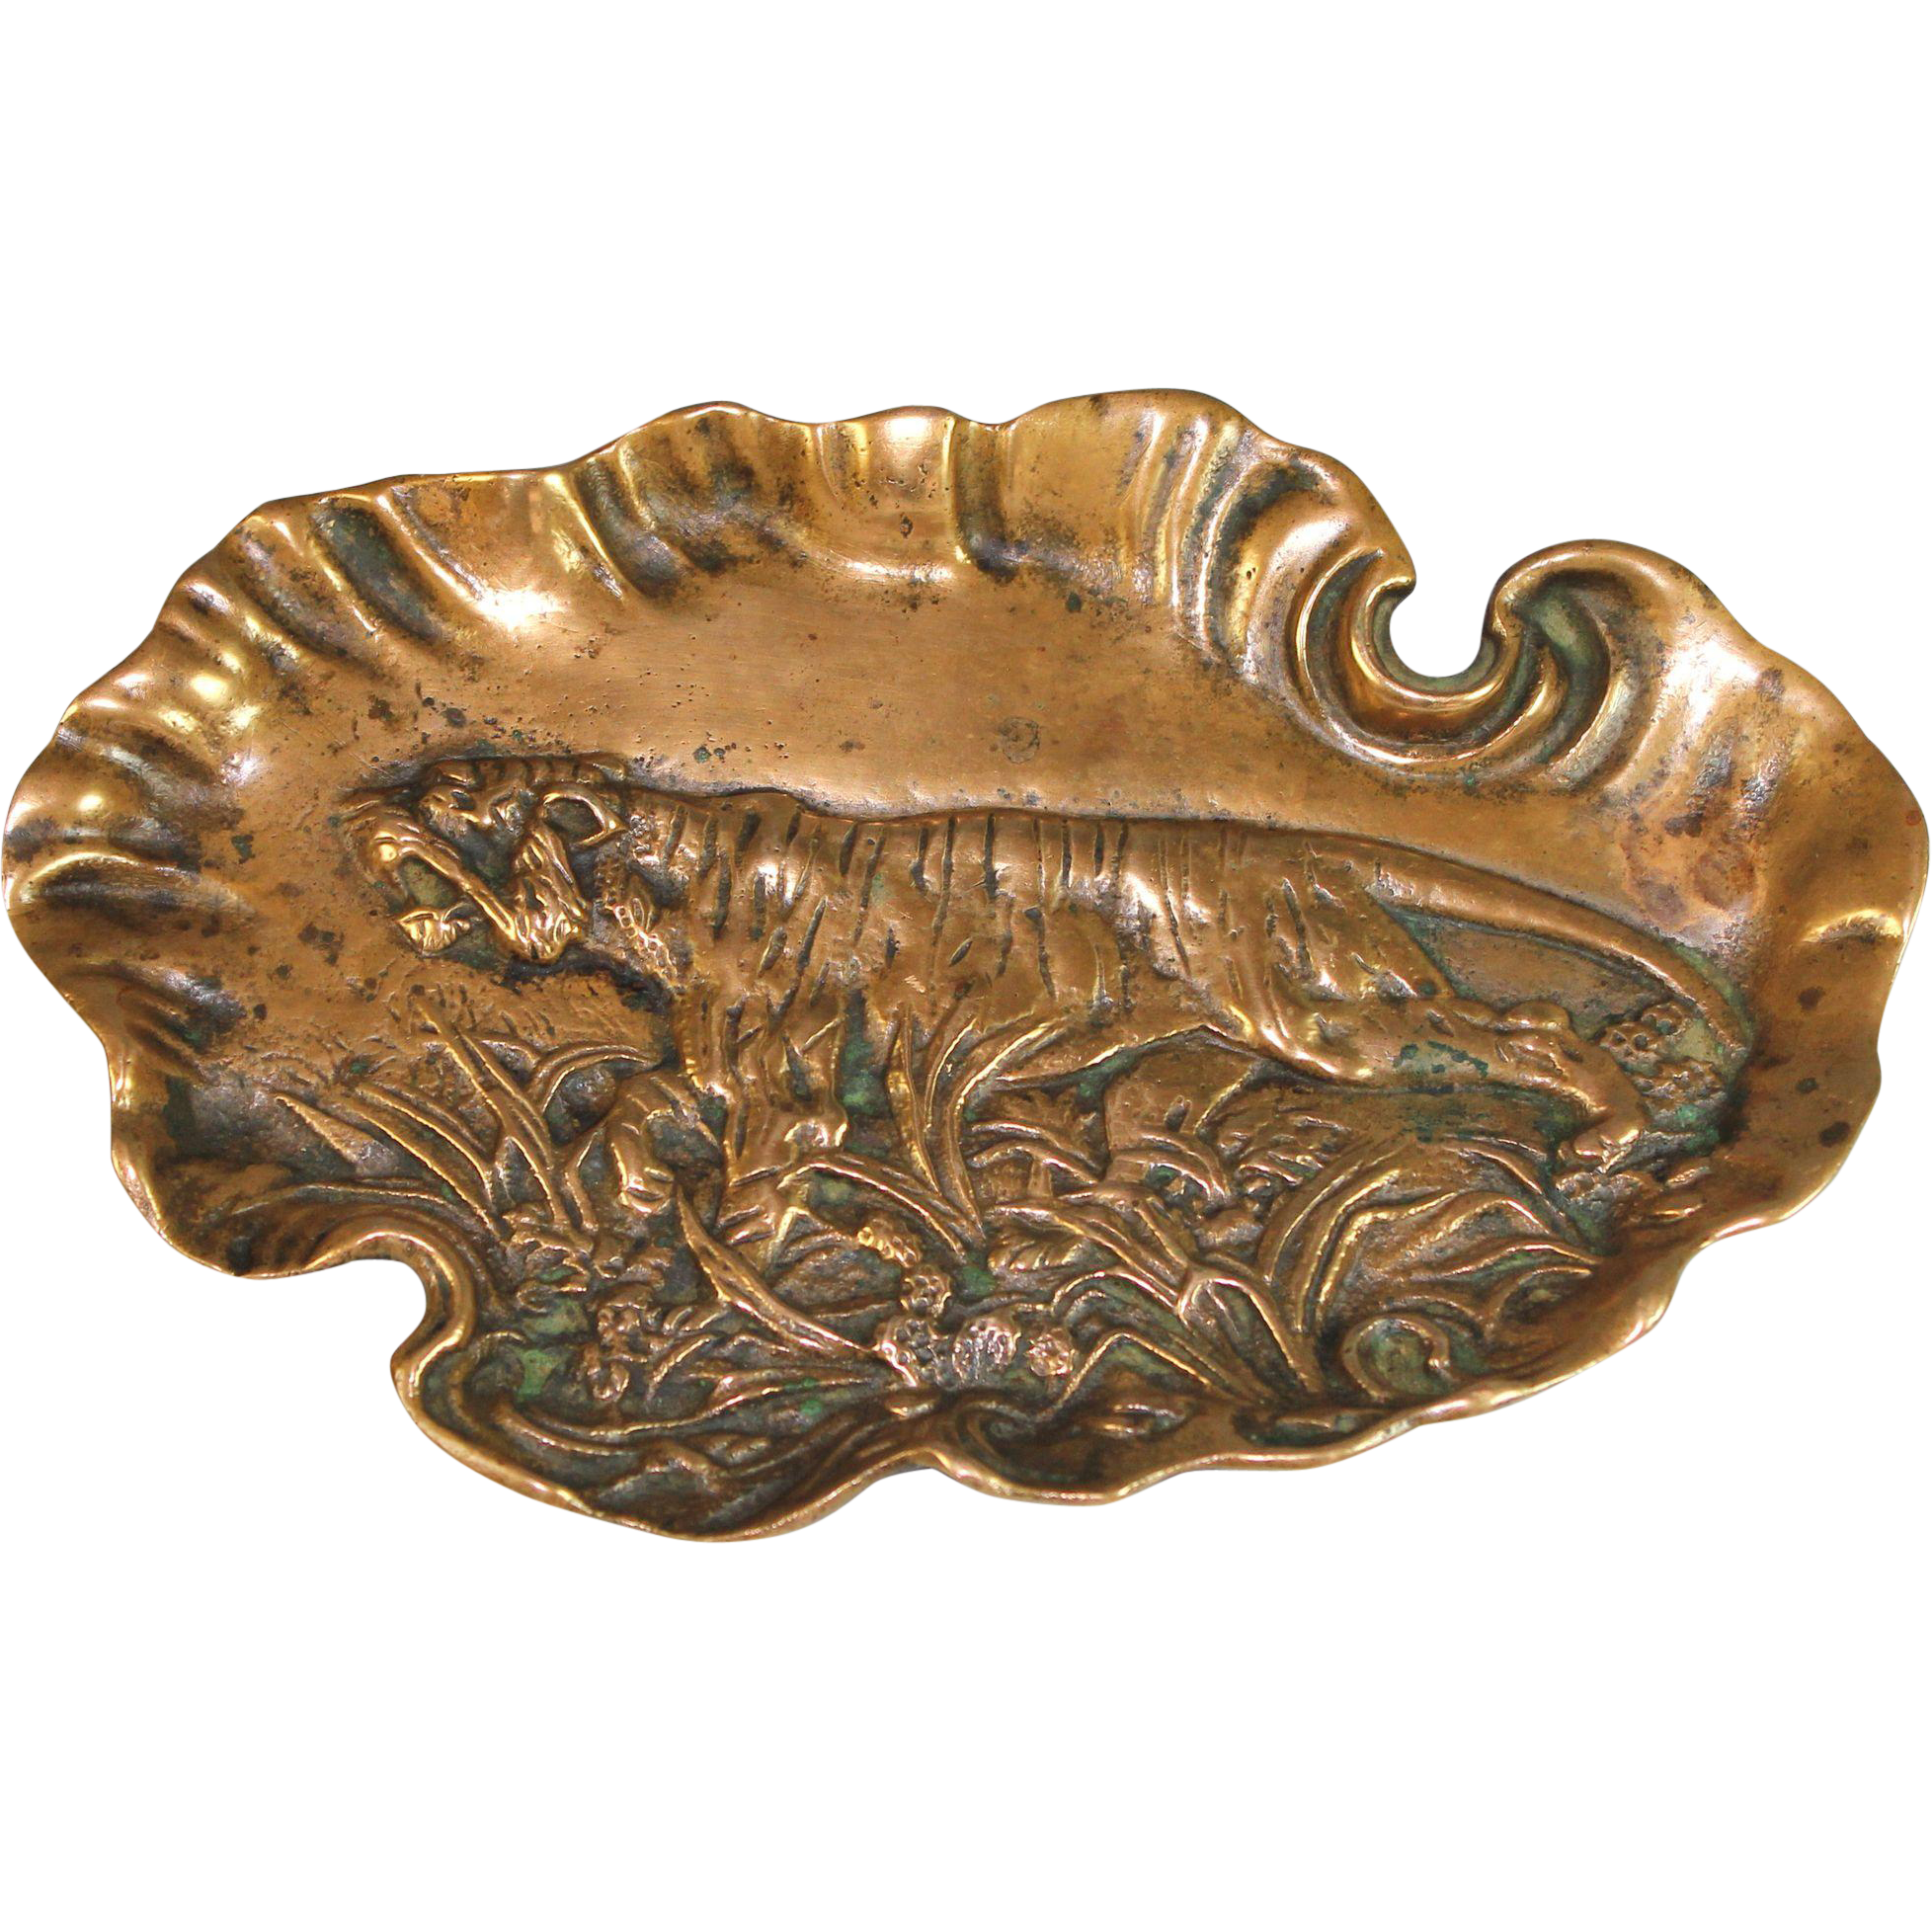 antique bronze vide poche coin dish depicting a tiger from julietjonesvintage on ruby lane. Black Bedroom Furniture Sets. Home Design Ideas